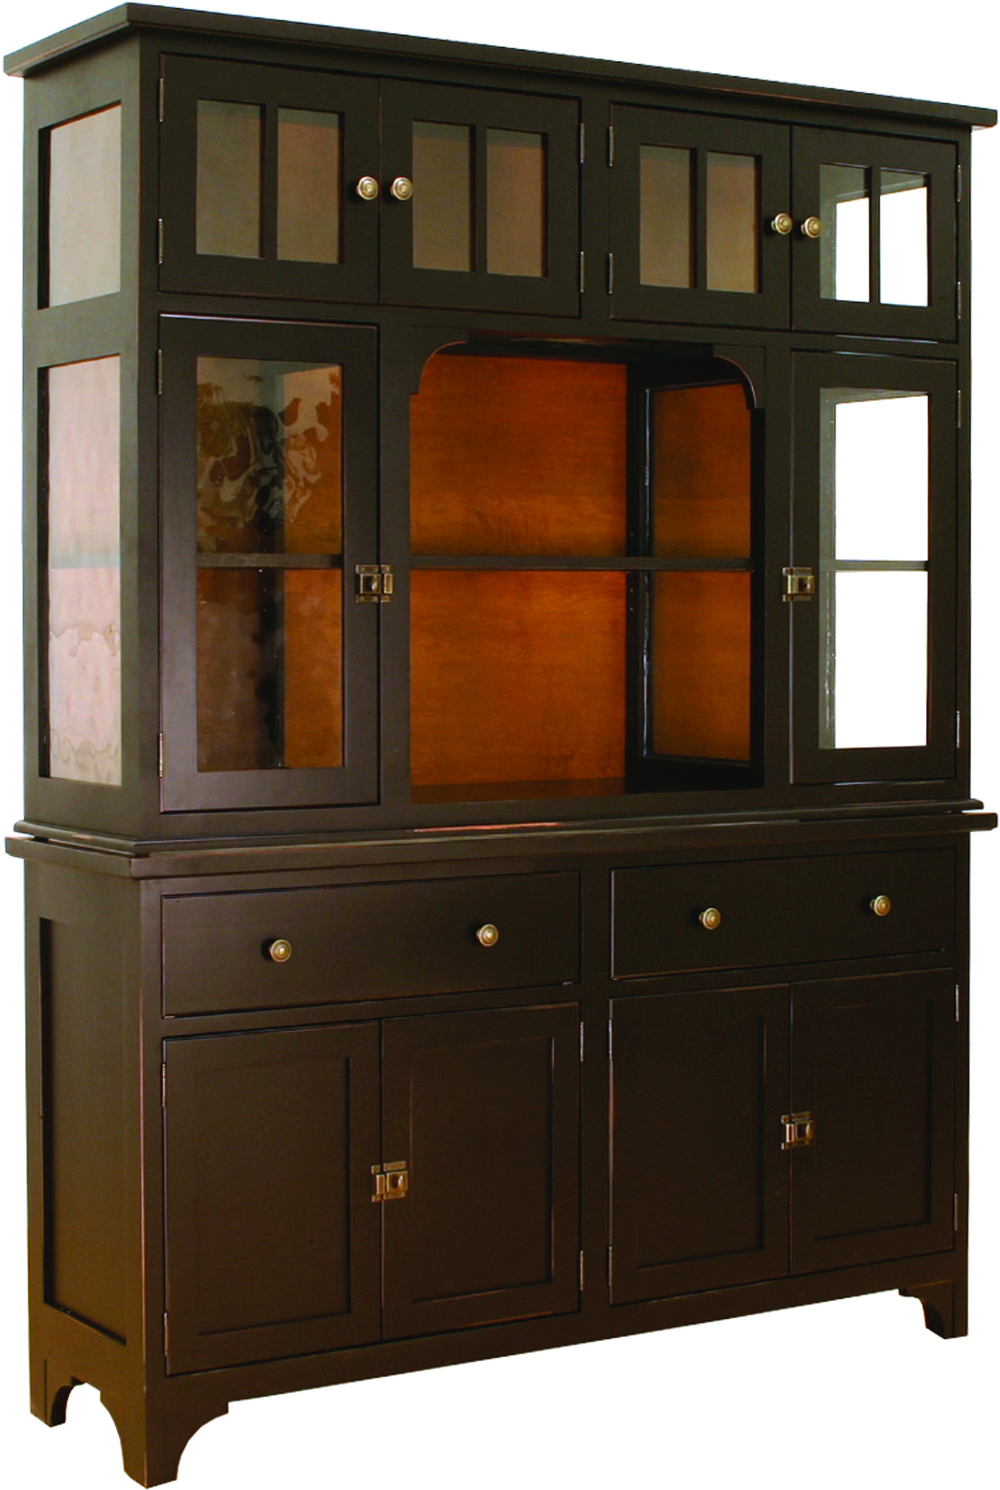 Canal Dover - Gatherings Hutch and Buffet